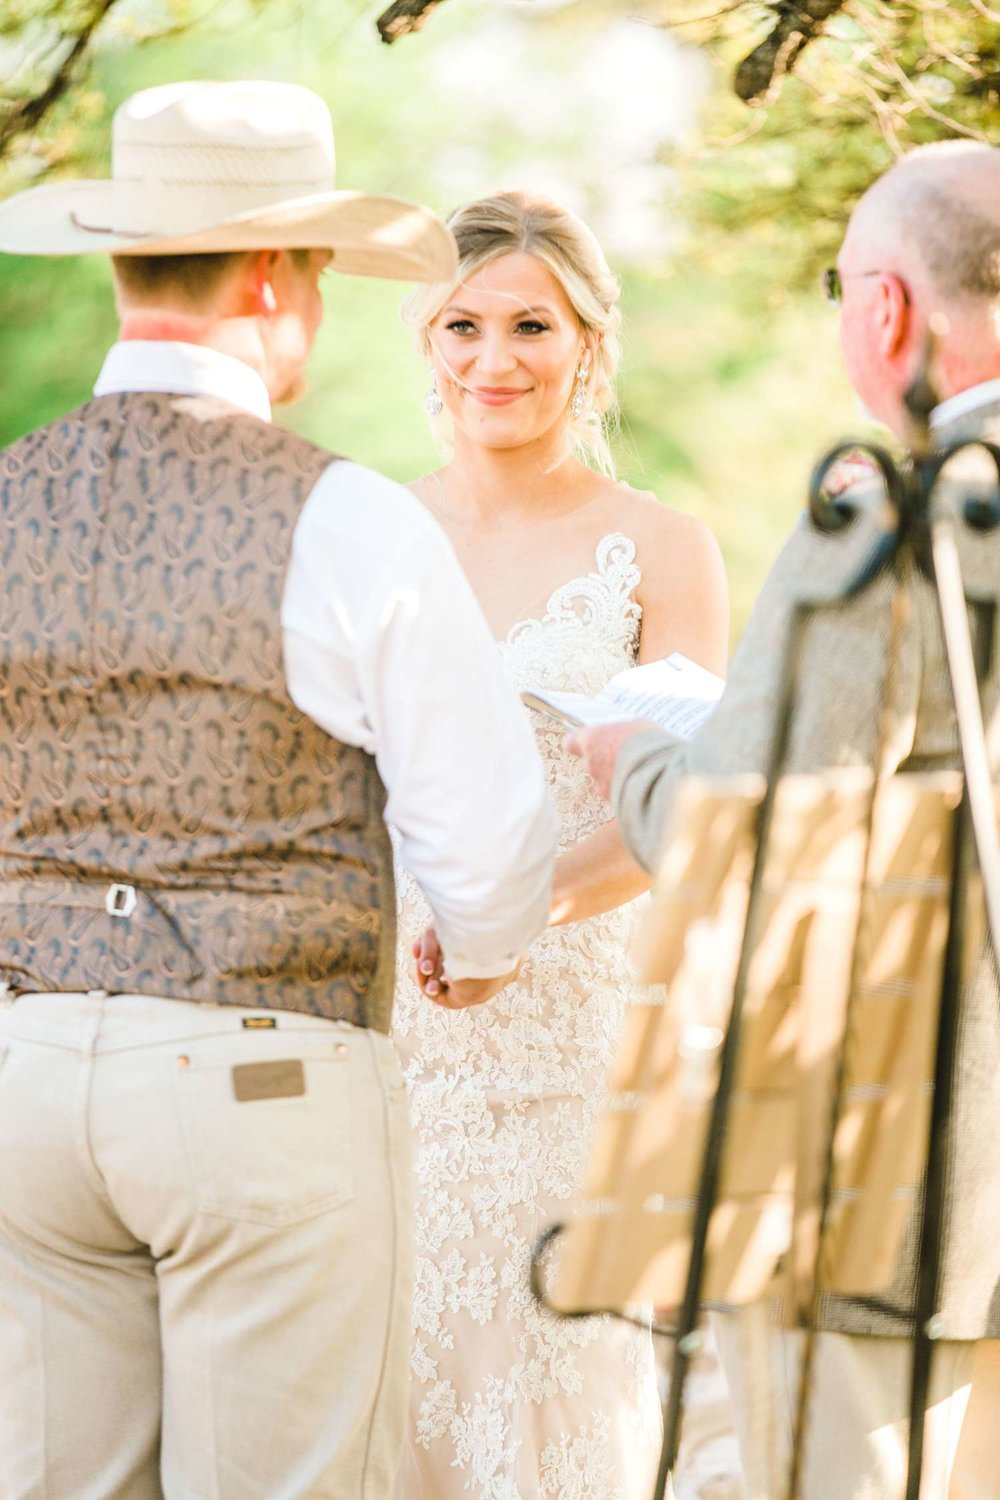 SARAH+TREVOR+BADGETT+SPARROW+CREEK+GRAHAM+TEXAS+ALLEEJ+WEDDINGS_0068.jpg